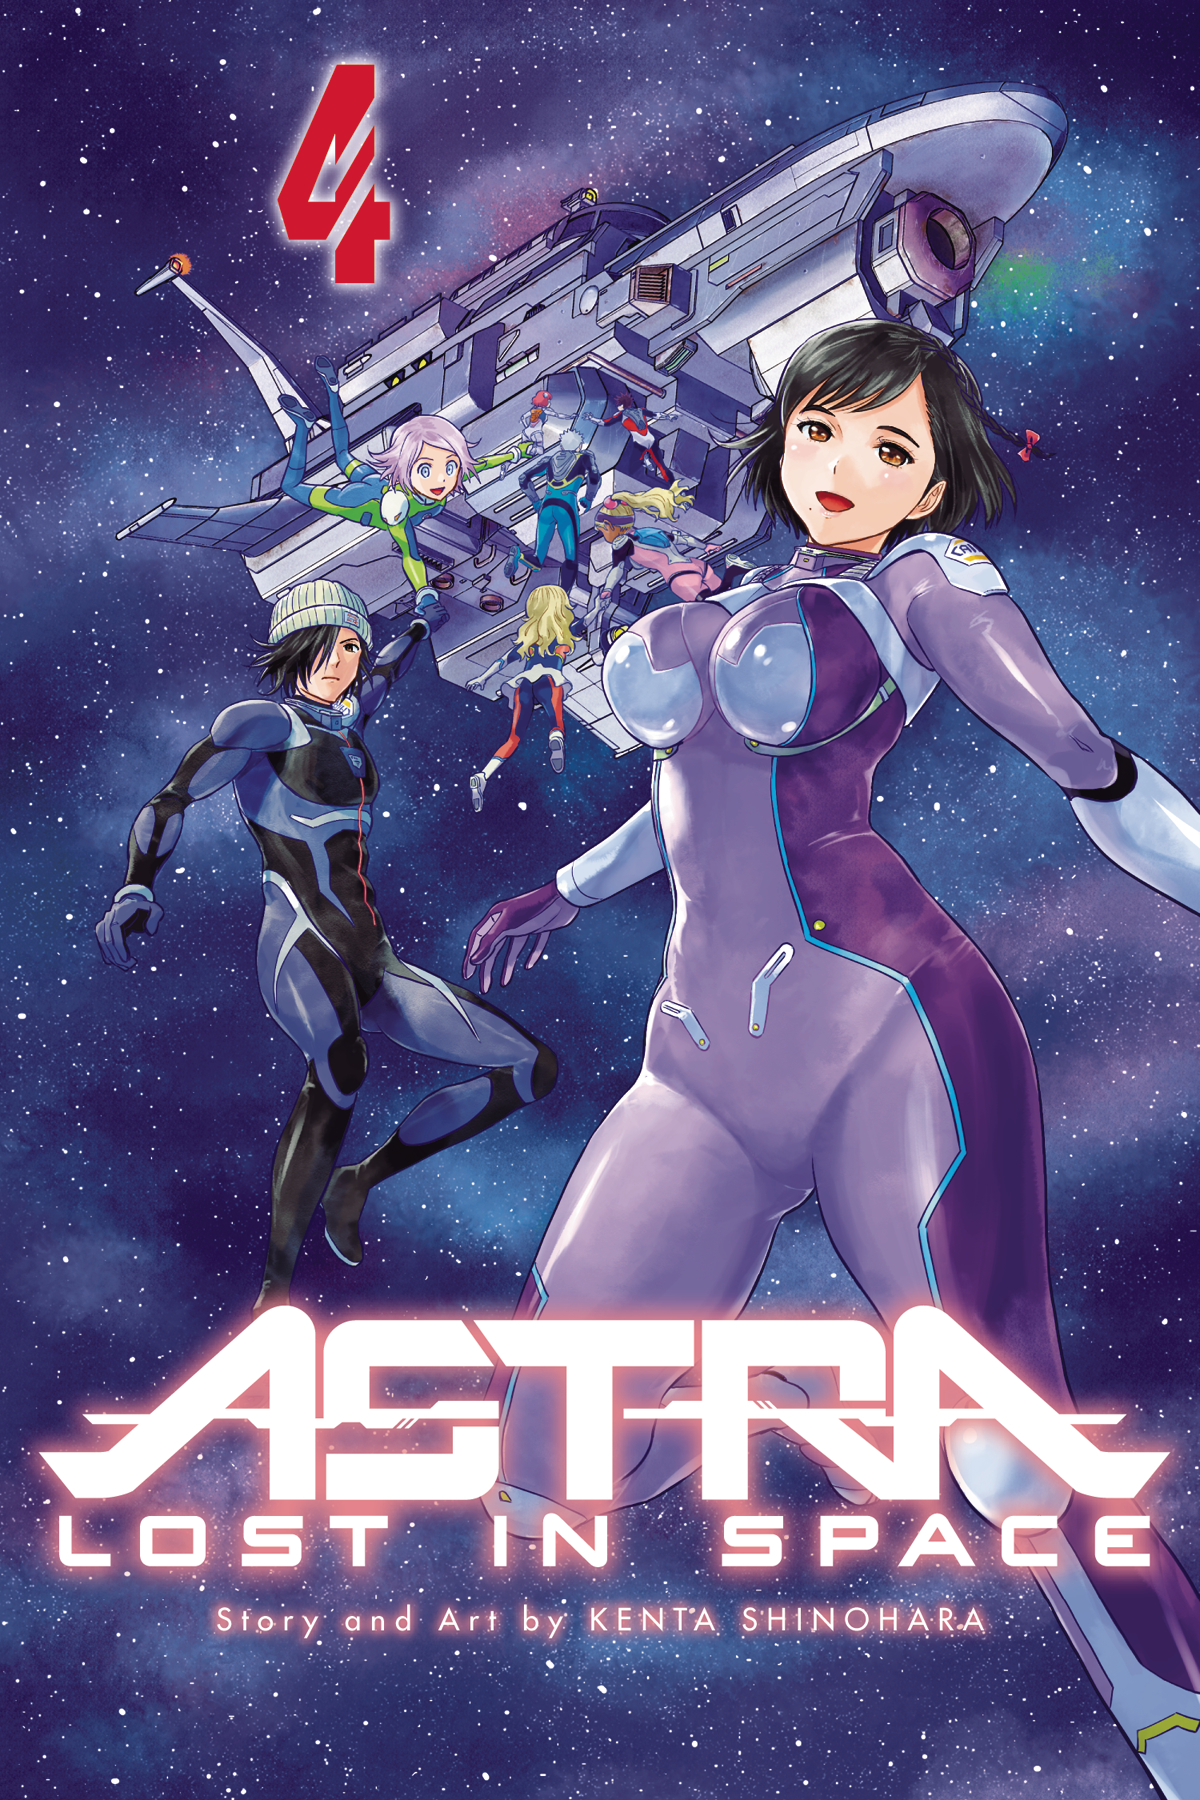 ASTRA LOST IN SPACE GN VOL 04